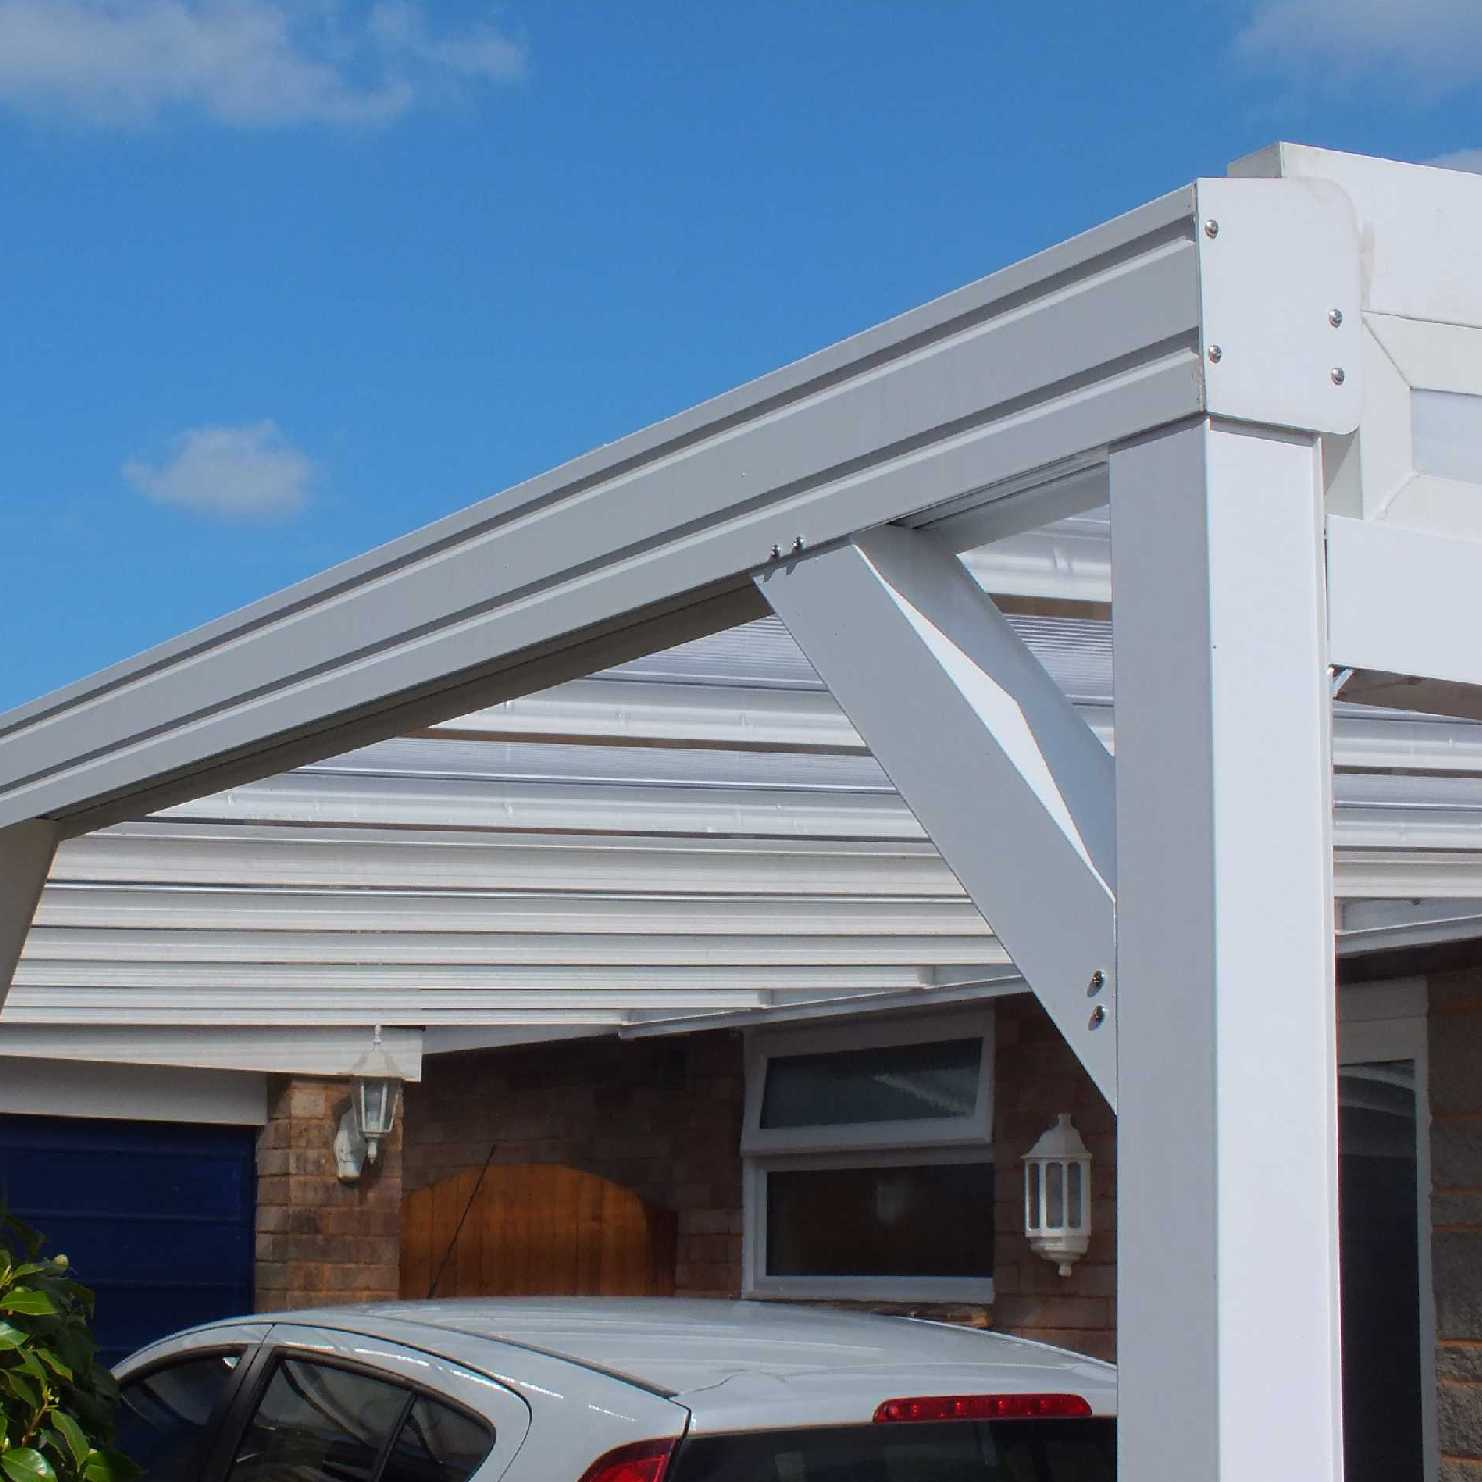 Great deals on Omega Smart White Lean-To Canopy with 16mm Polycarbonate Glazing - 8.4m (W) x 4.5m (P), (4) Supporting Posts